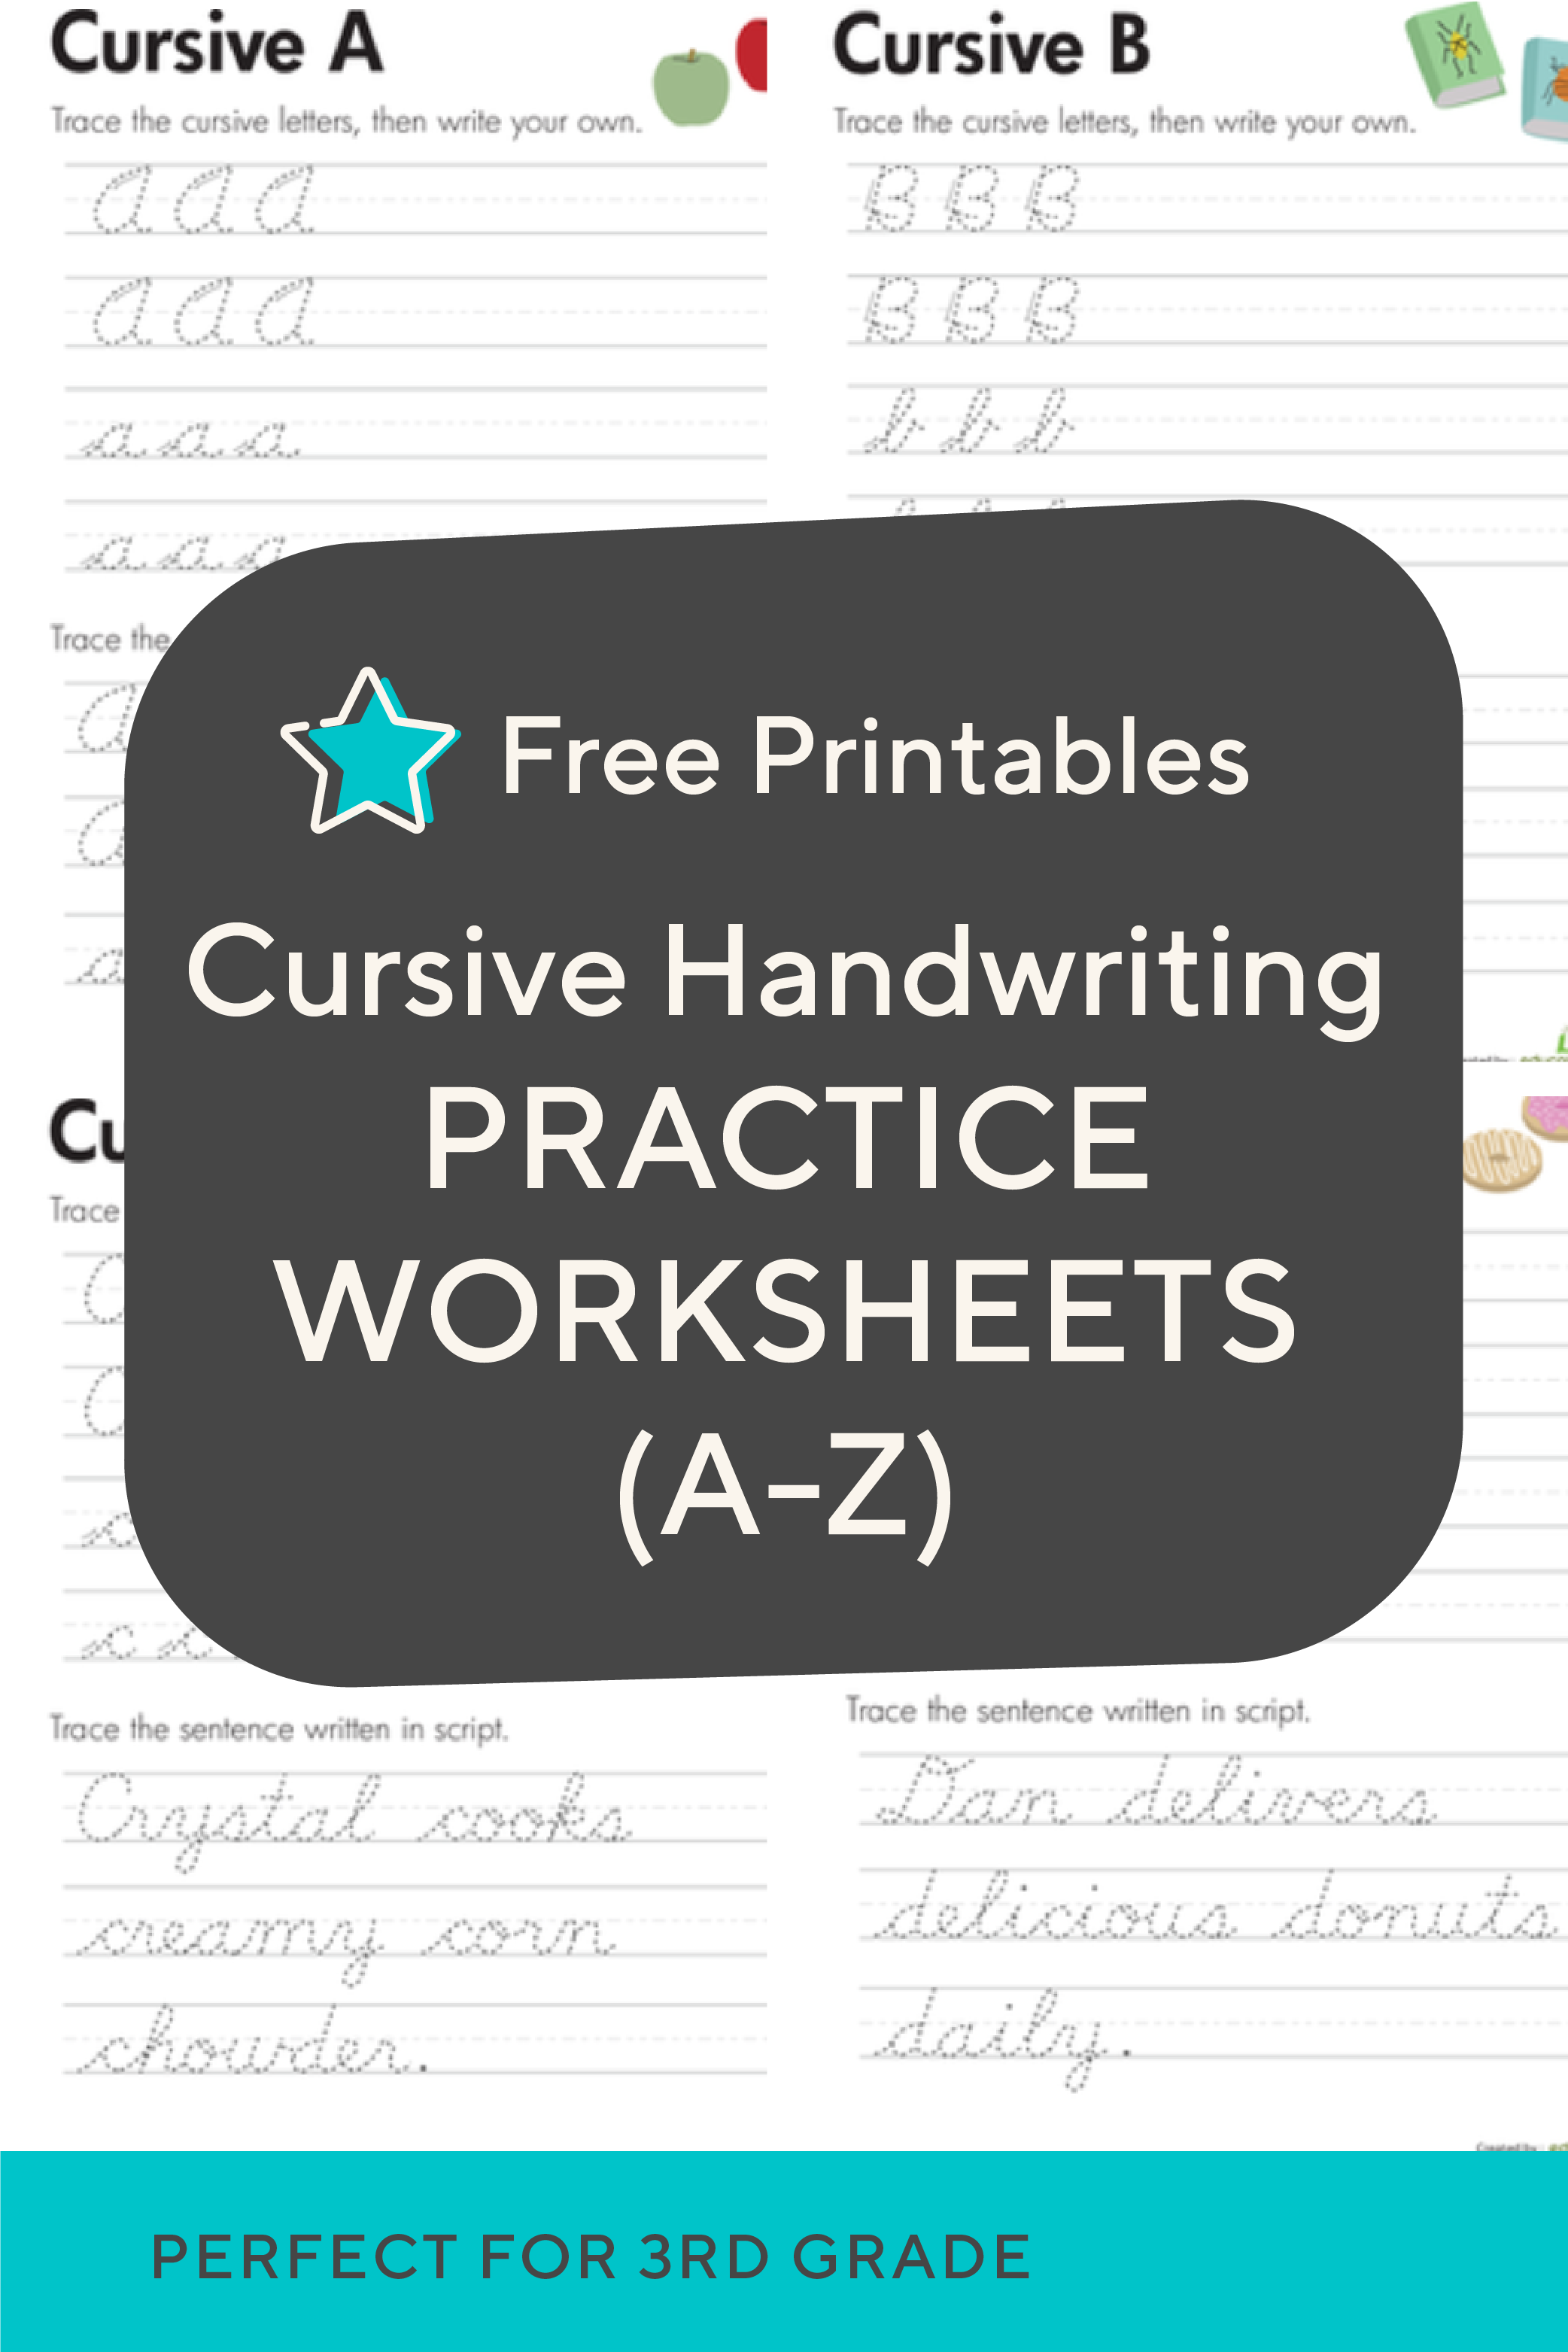 hight resolution of Practice cursive letters A-Z with free cursive handwriting worksheets.  These a…   Cursive handwriting practice